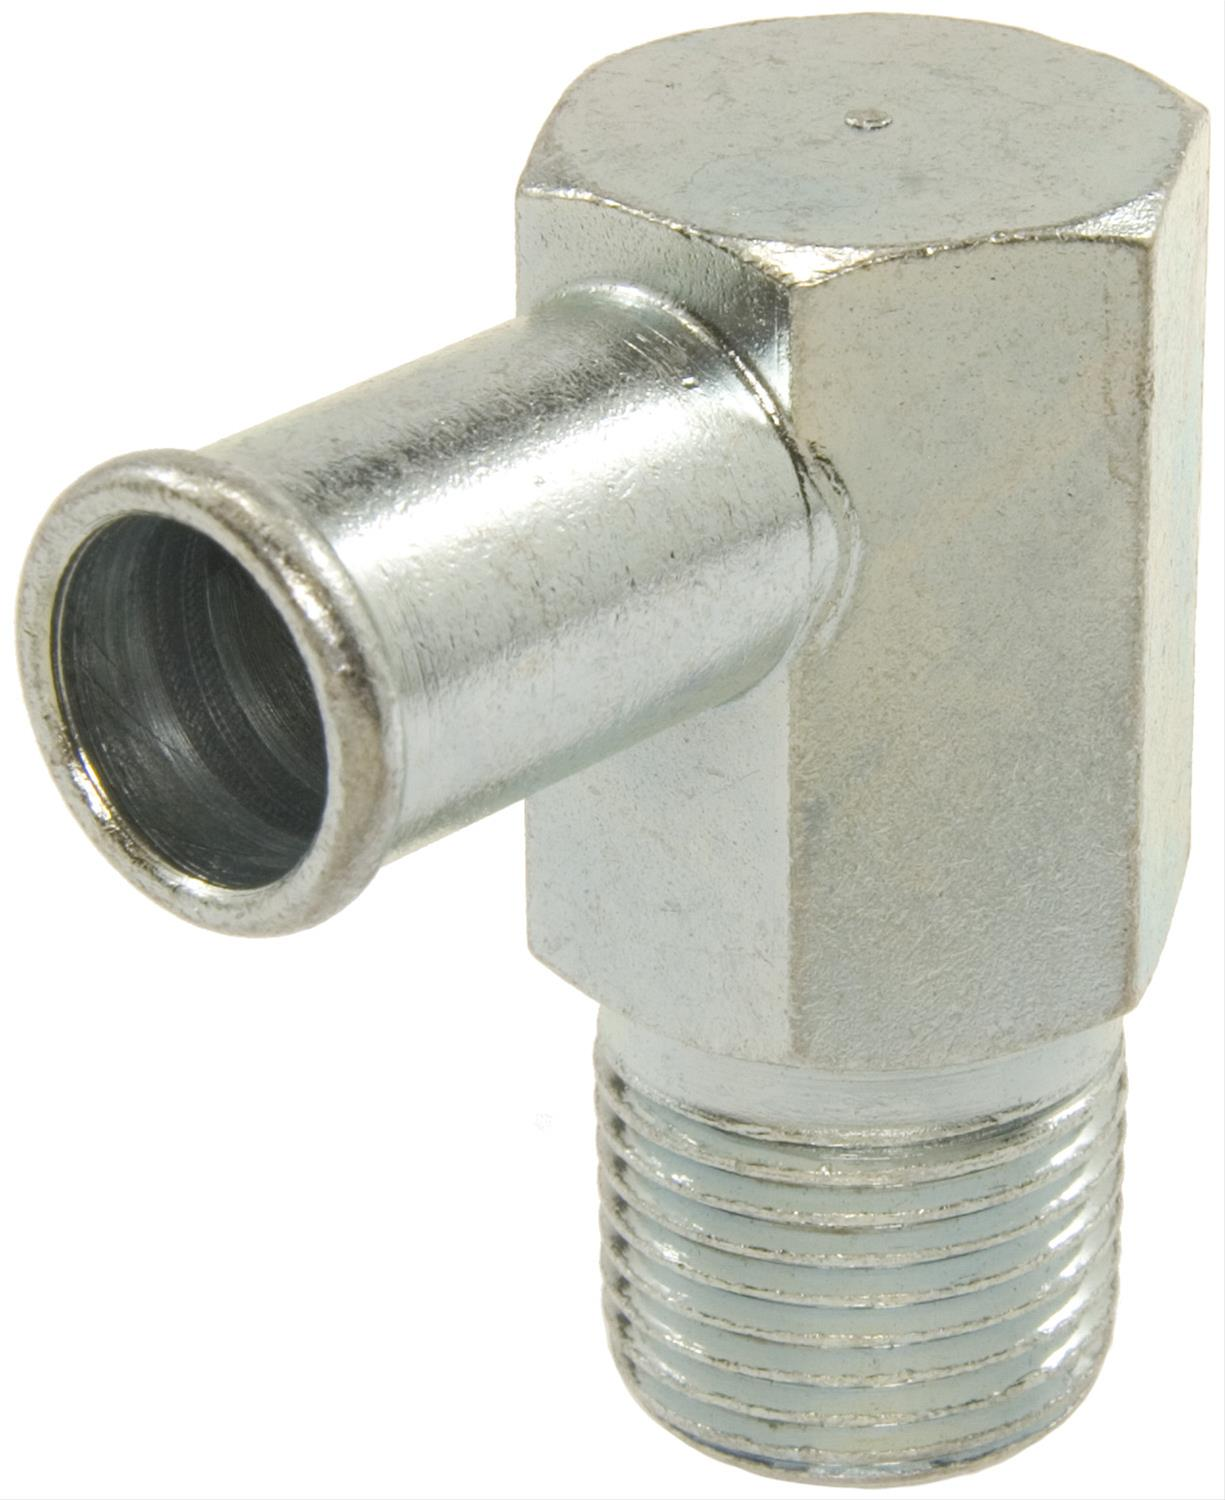 Acdelco heater hose connector fitting